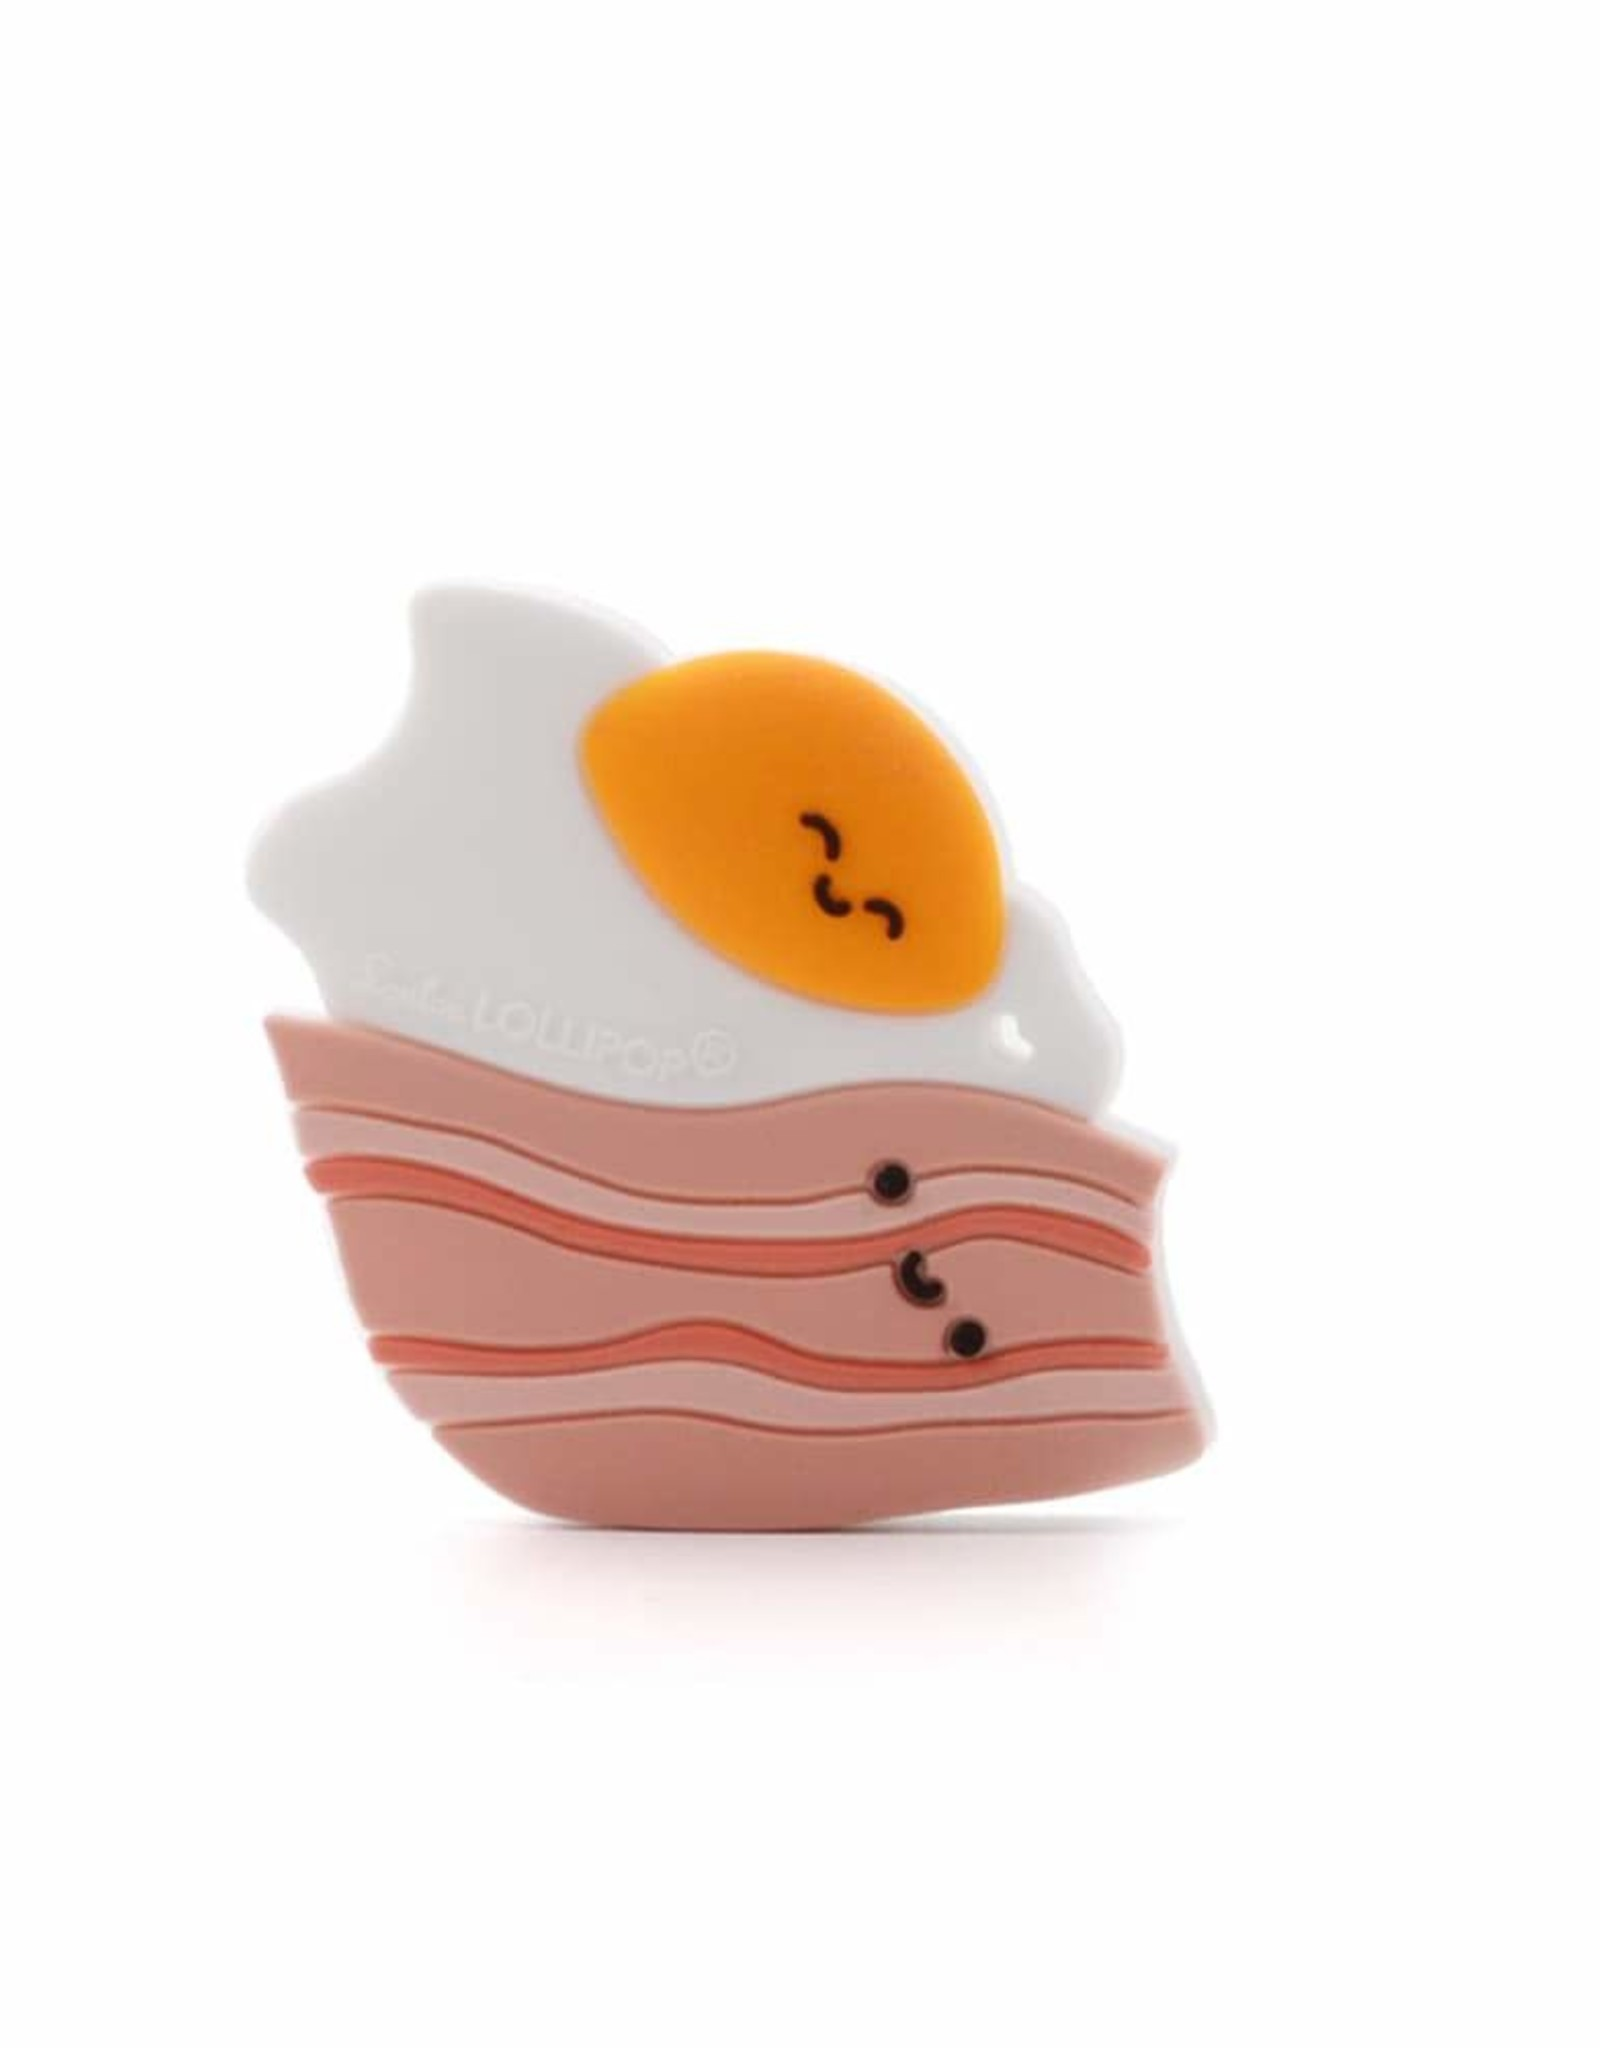 Bacon and Egg Silicone Teether